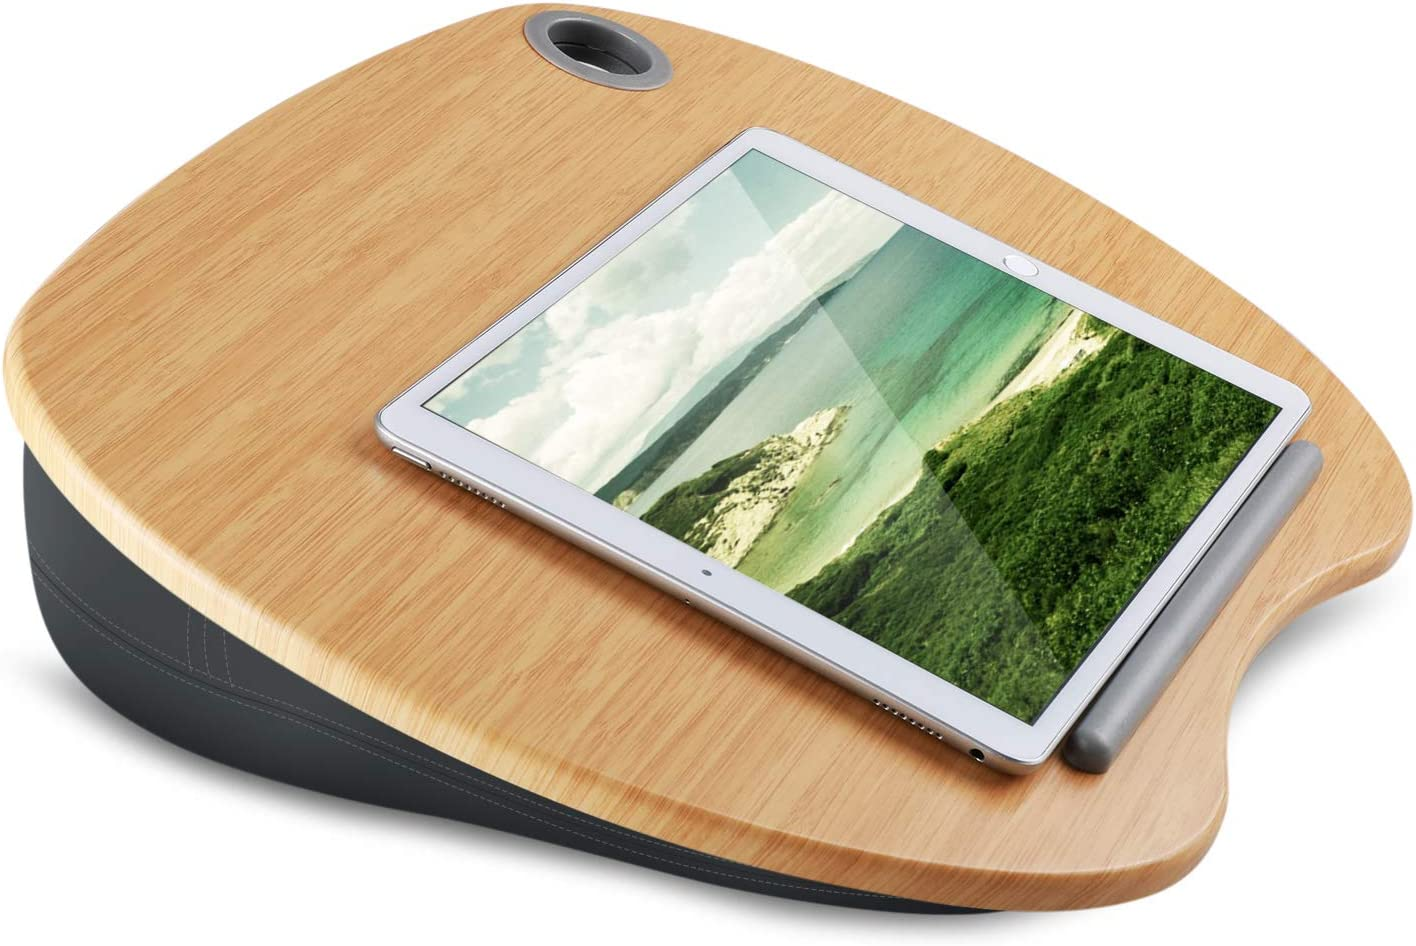 Laptop Stand with Cushion  Bamboo Platform on Bed  Sofa as Book Lap Desk